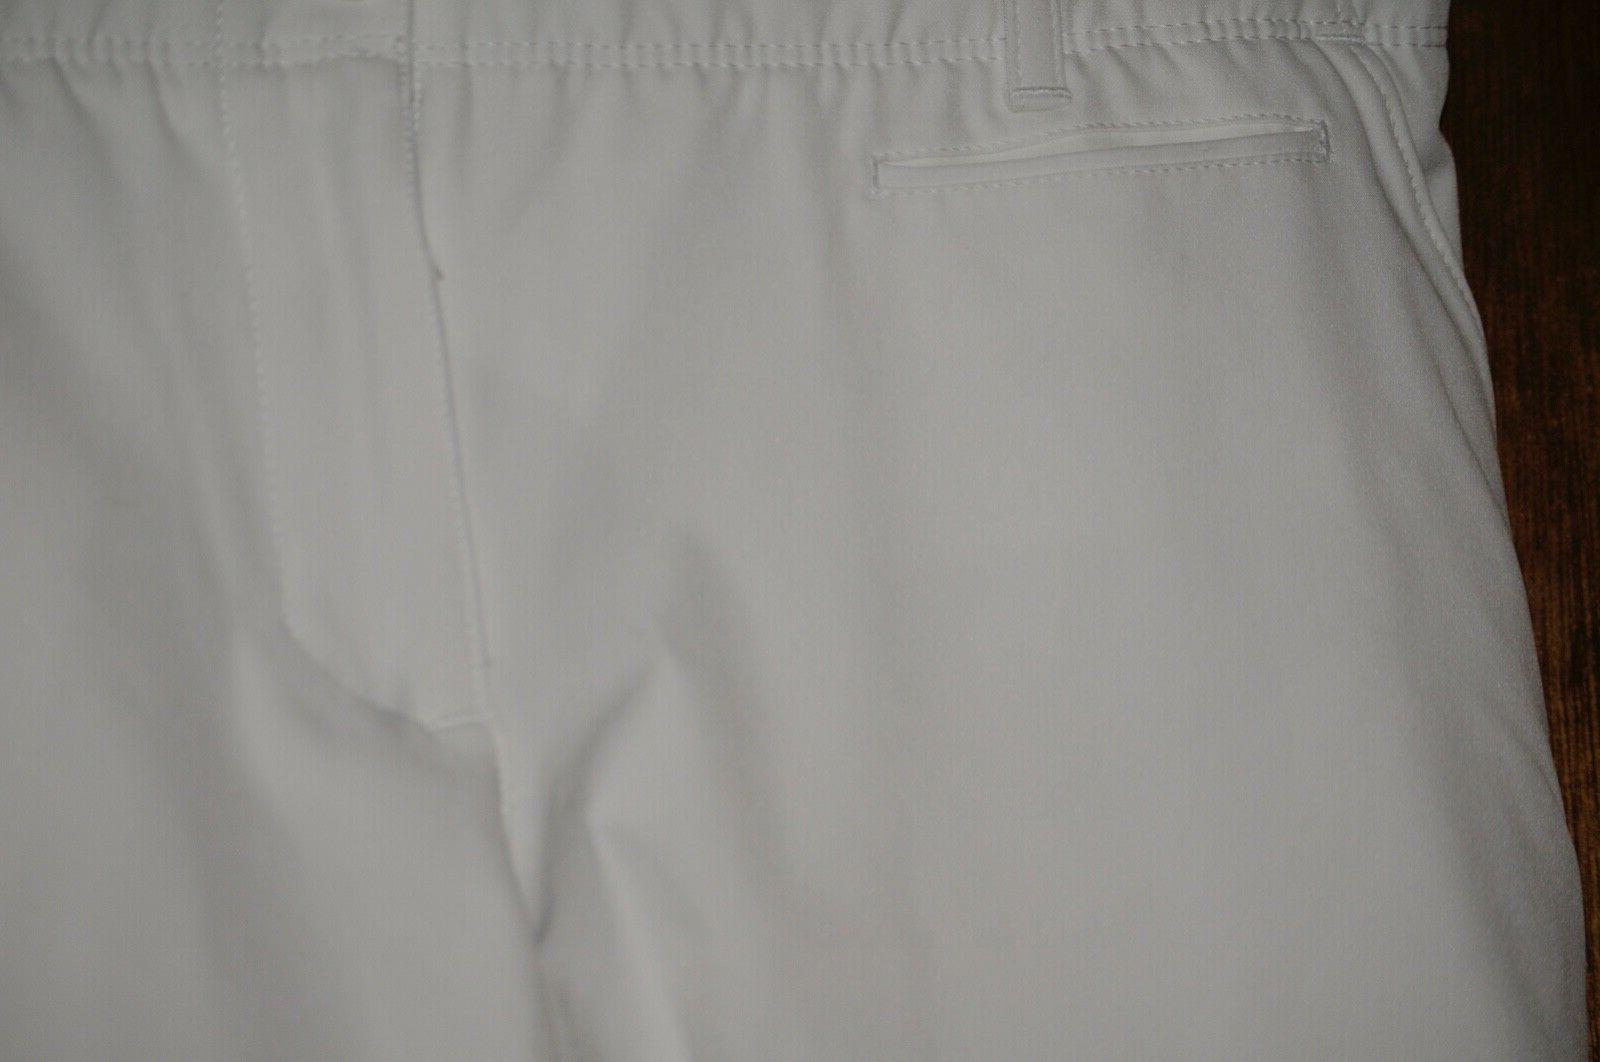 Women's Under Armour Shorty Shorts #1293832 Size 10